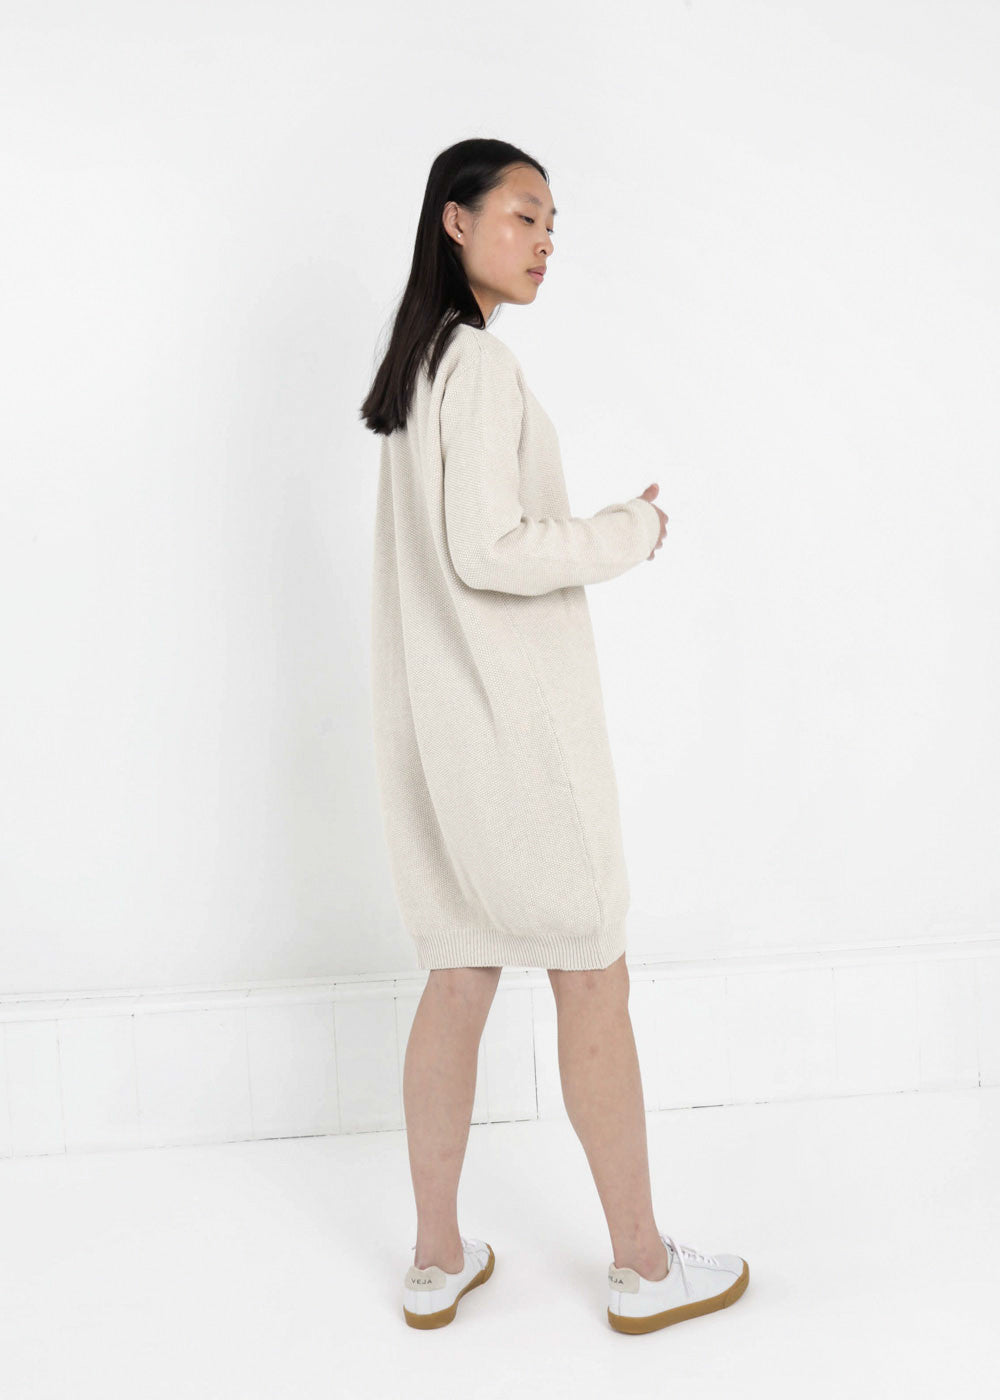 Kowtow See You There Dress — New Classics Studios